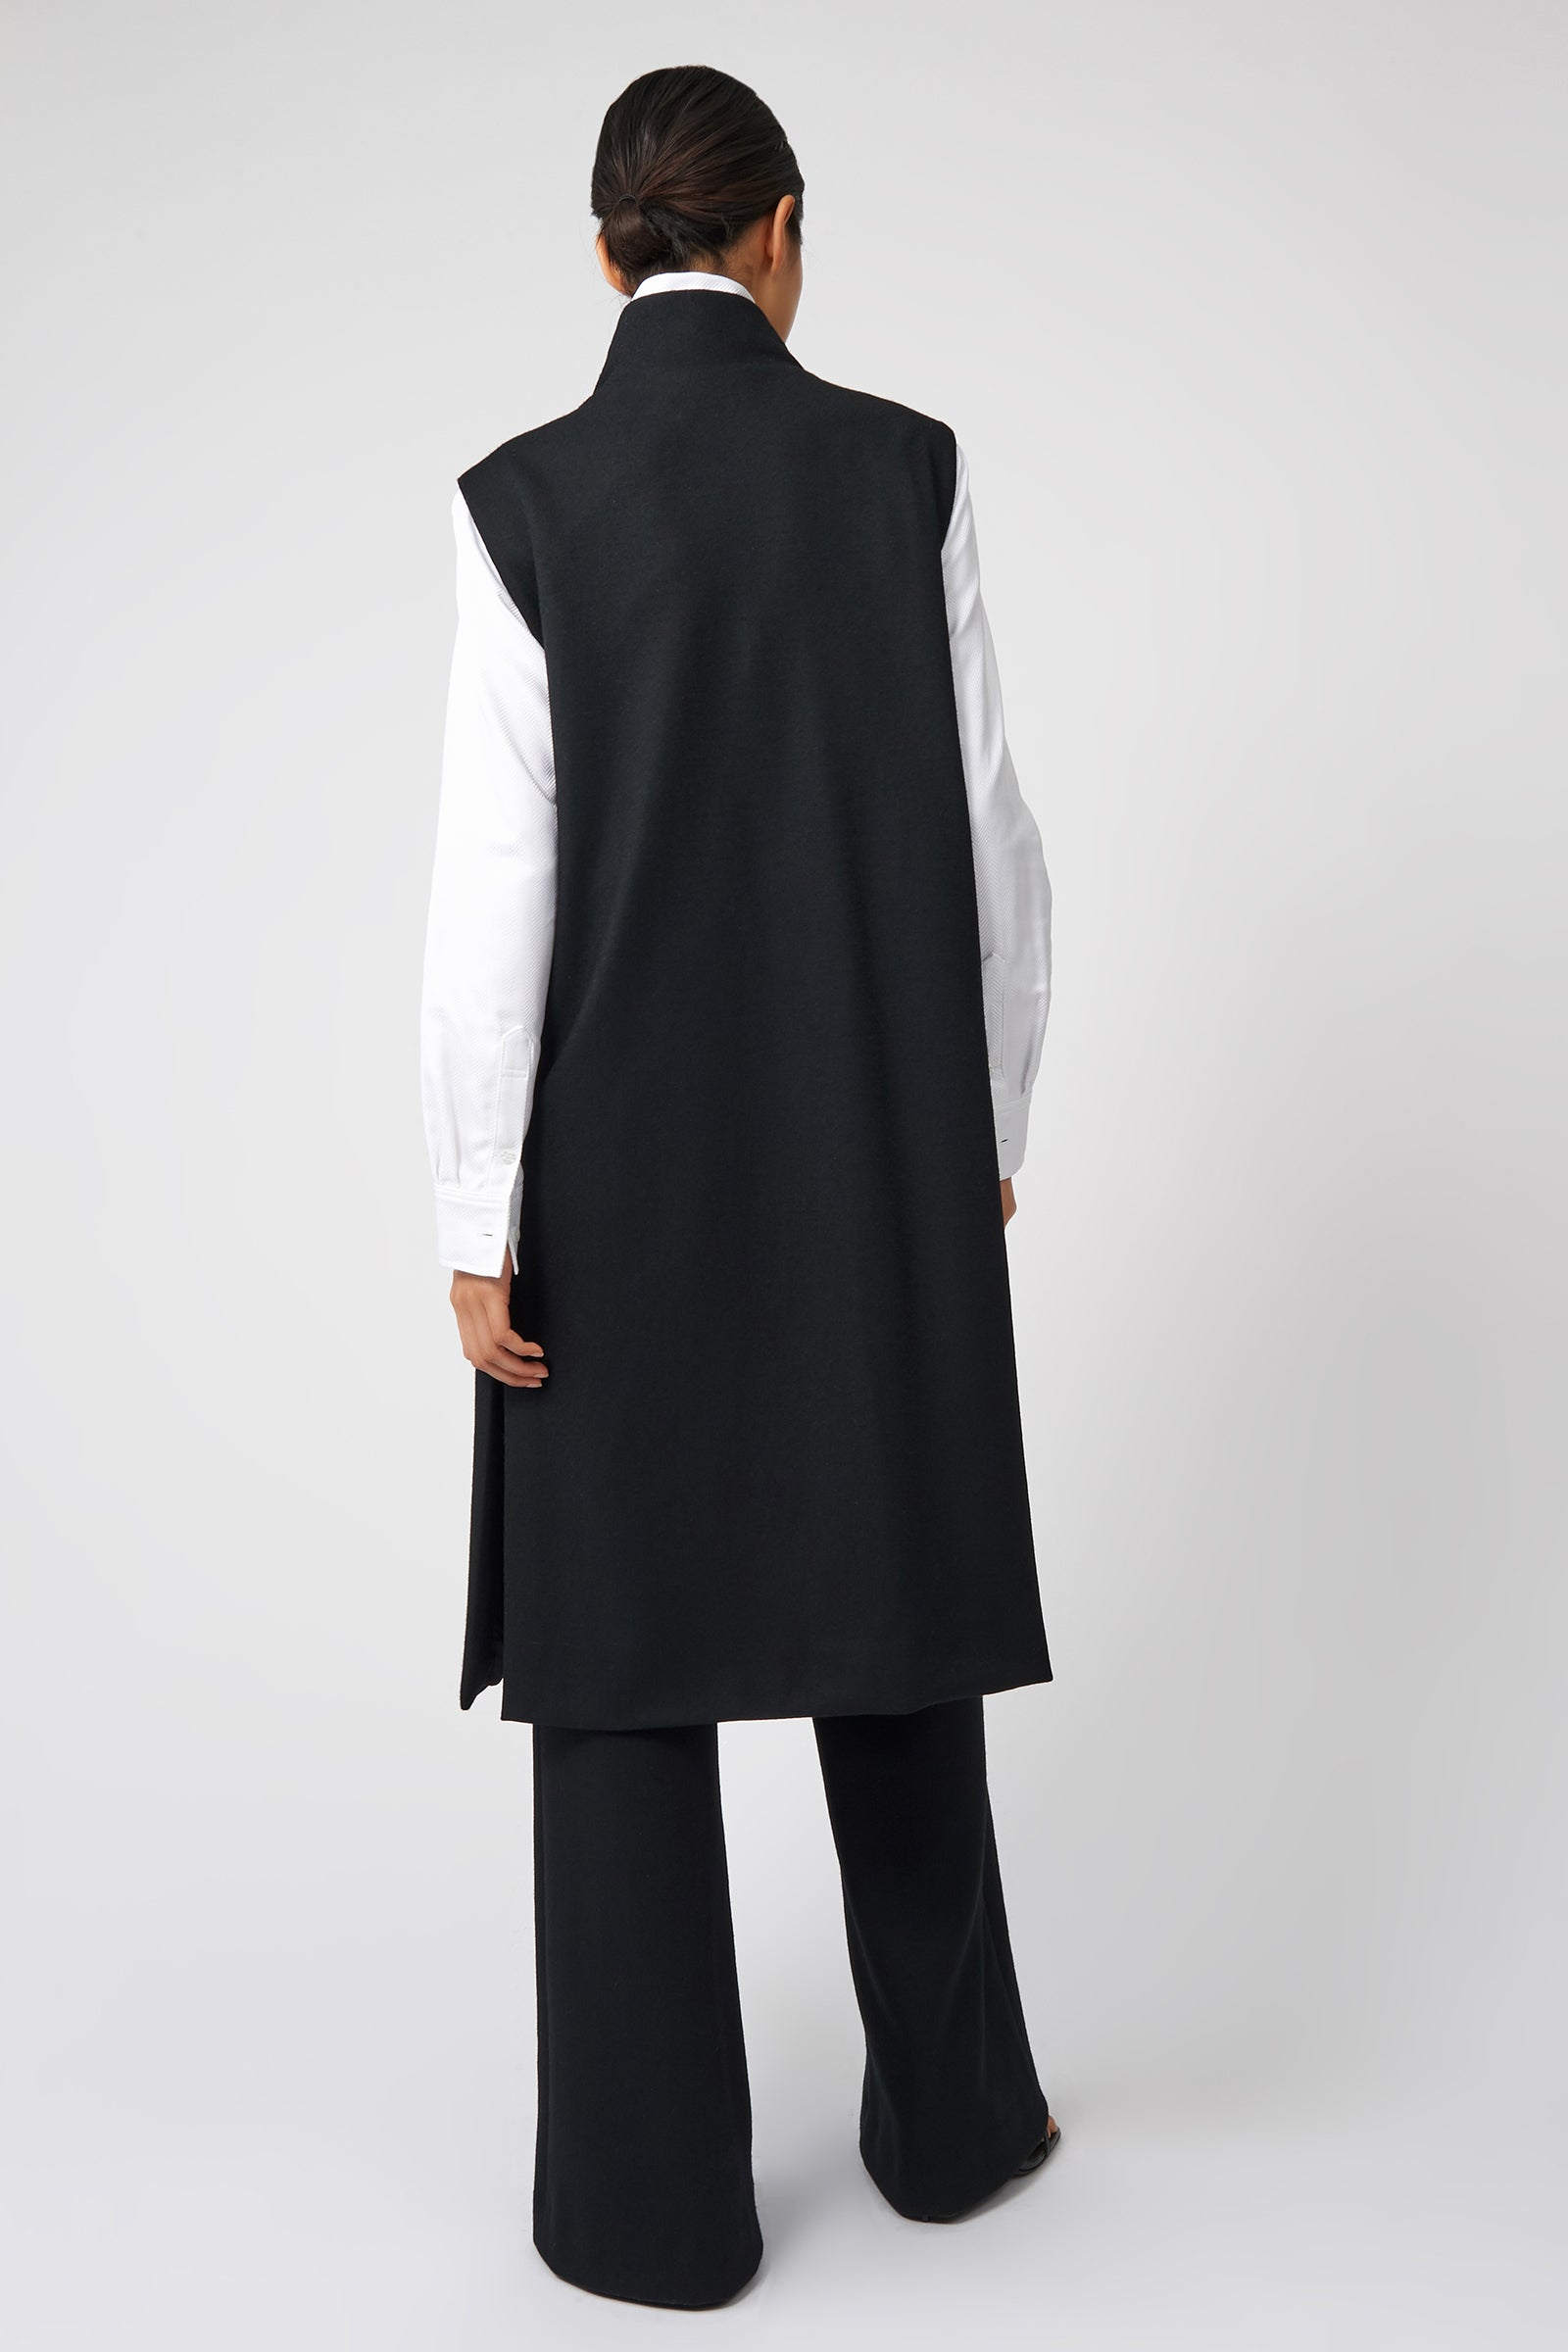 Kal Rieman Side Zip Vest in Black on Model Back View